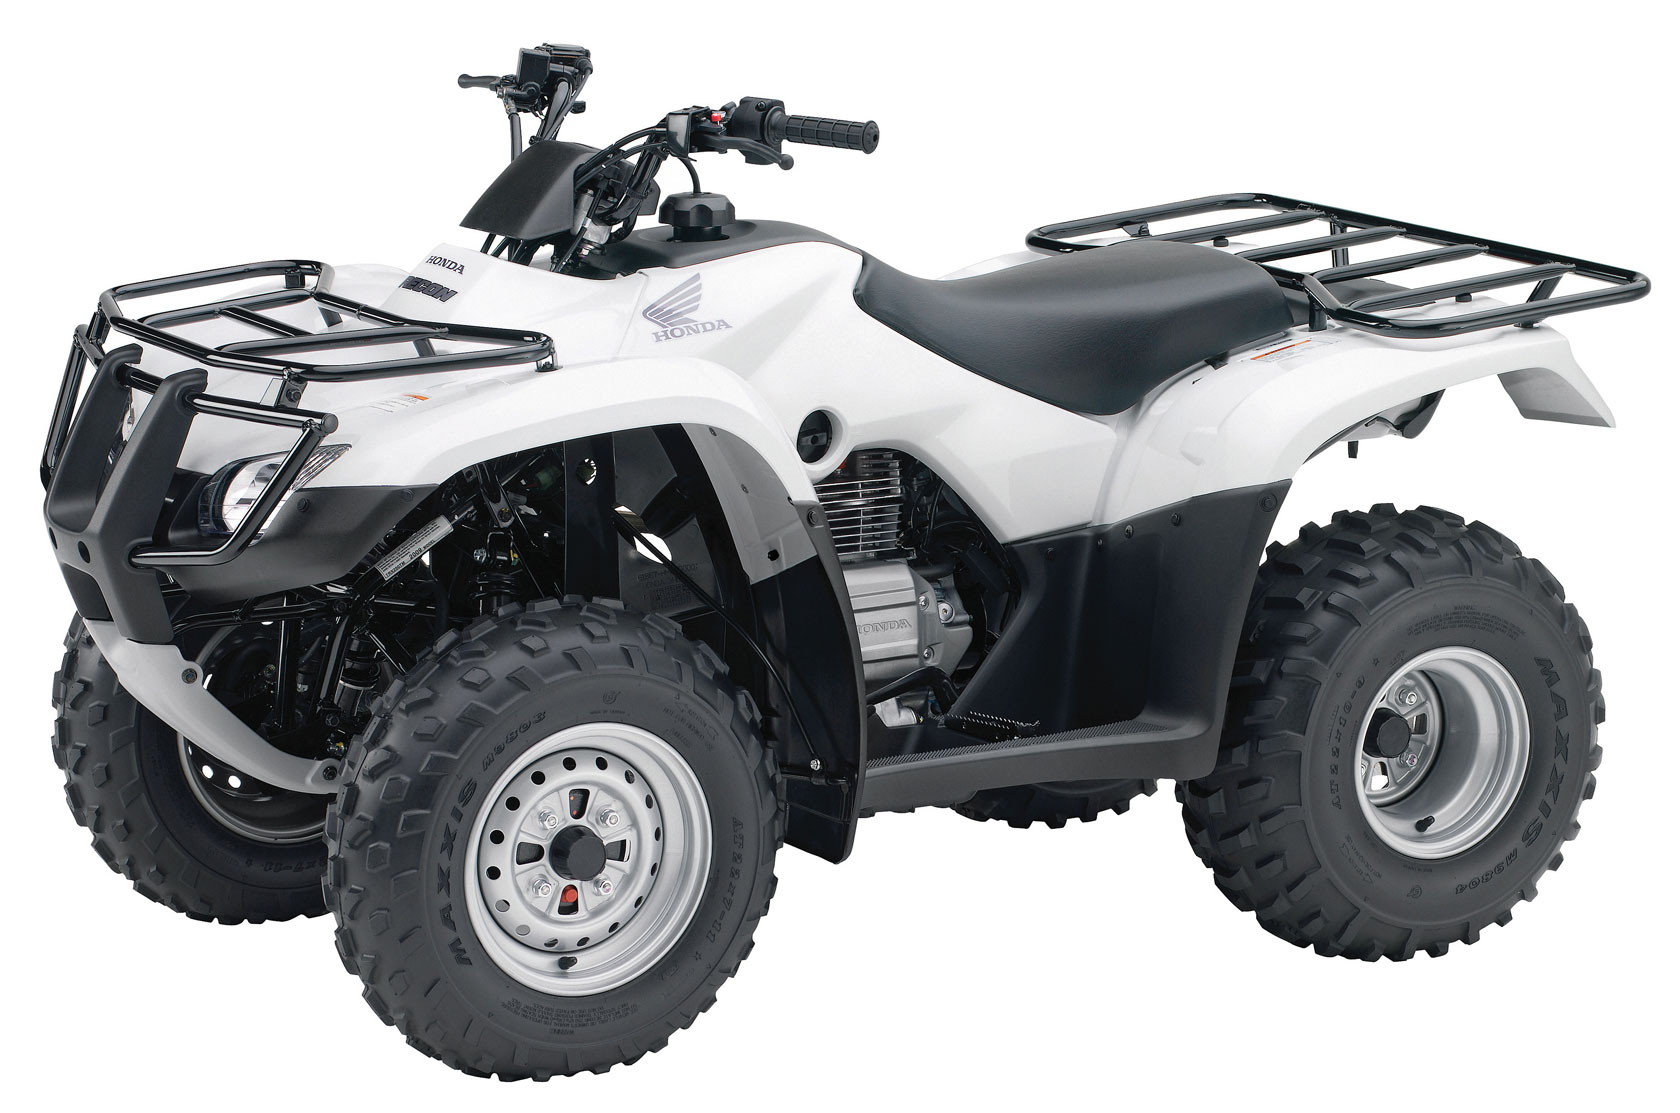 Honda Fourtrax Recon Trx250tm Specs